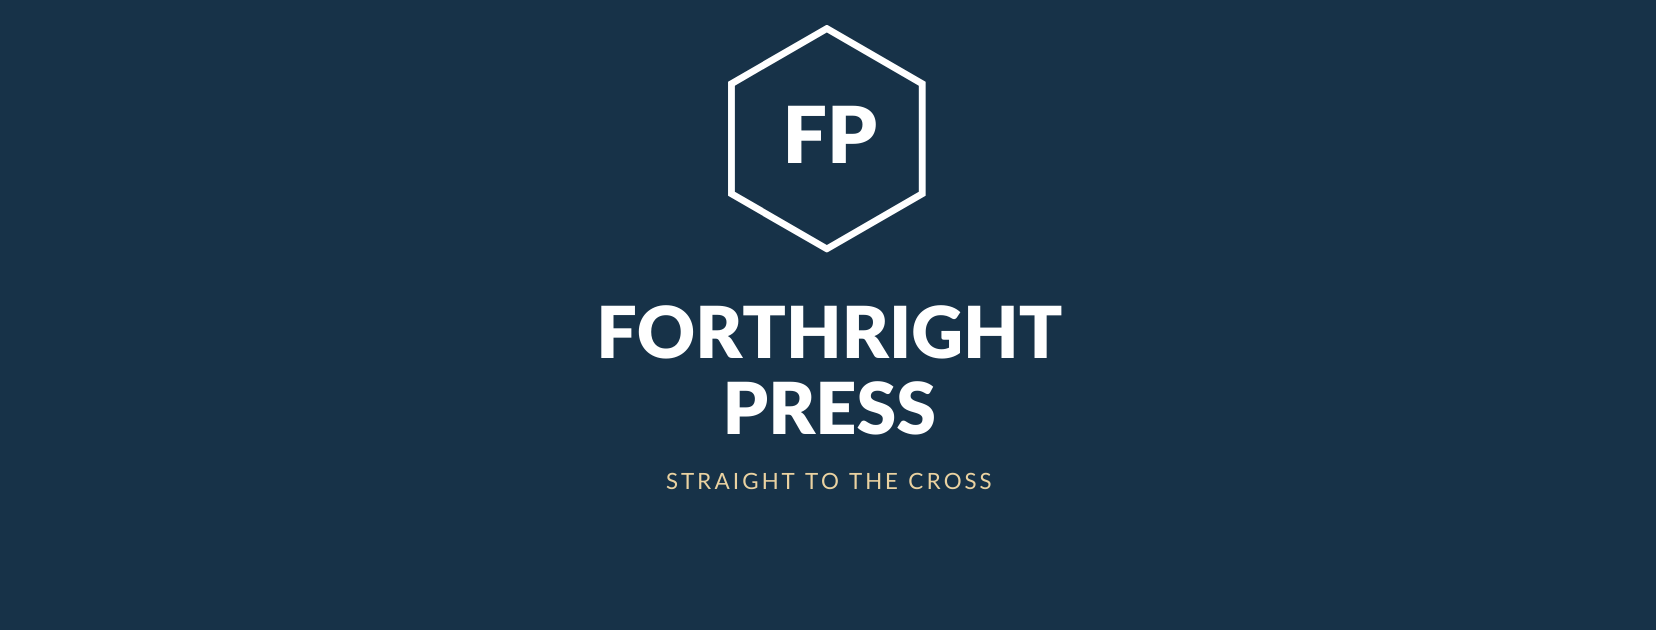 Forthright Press